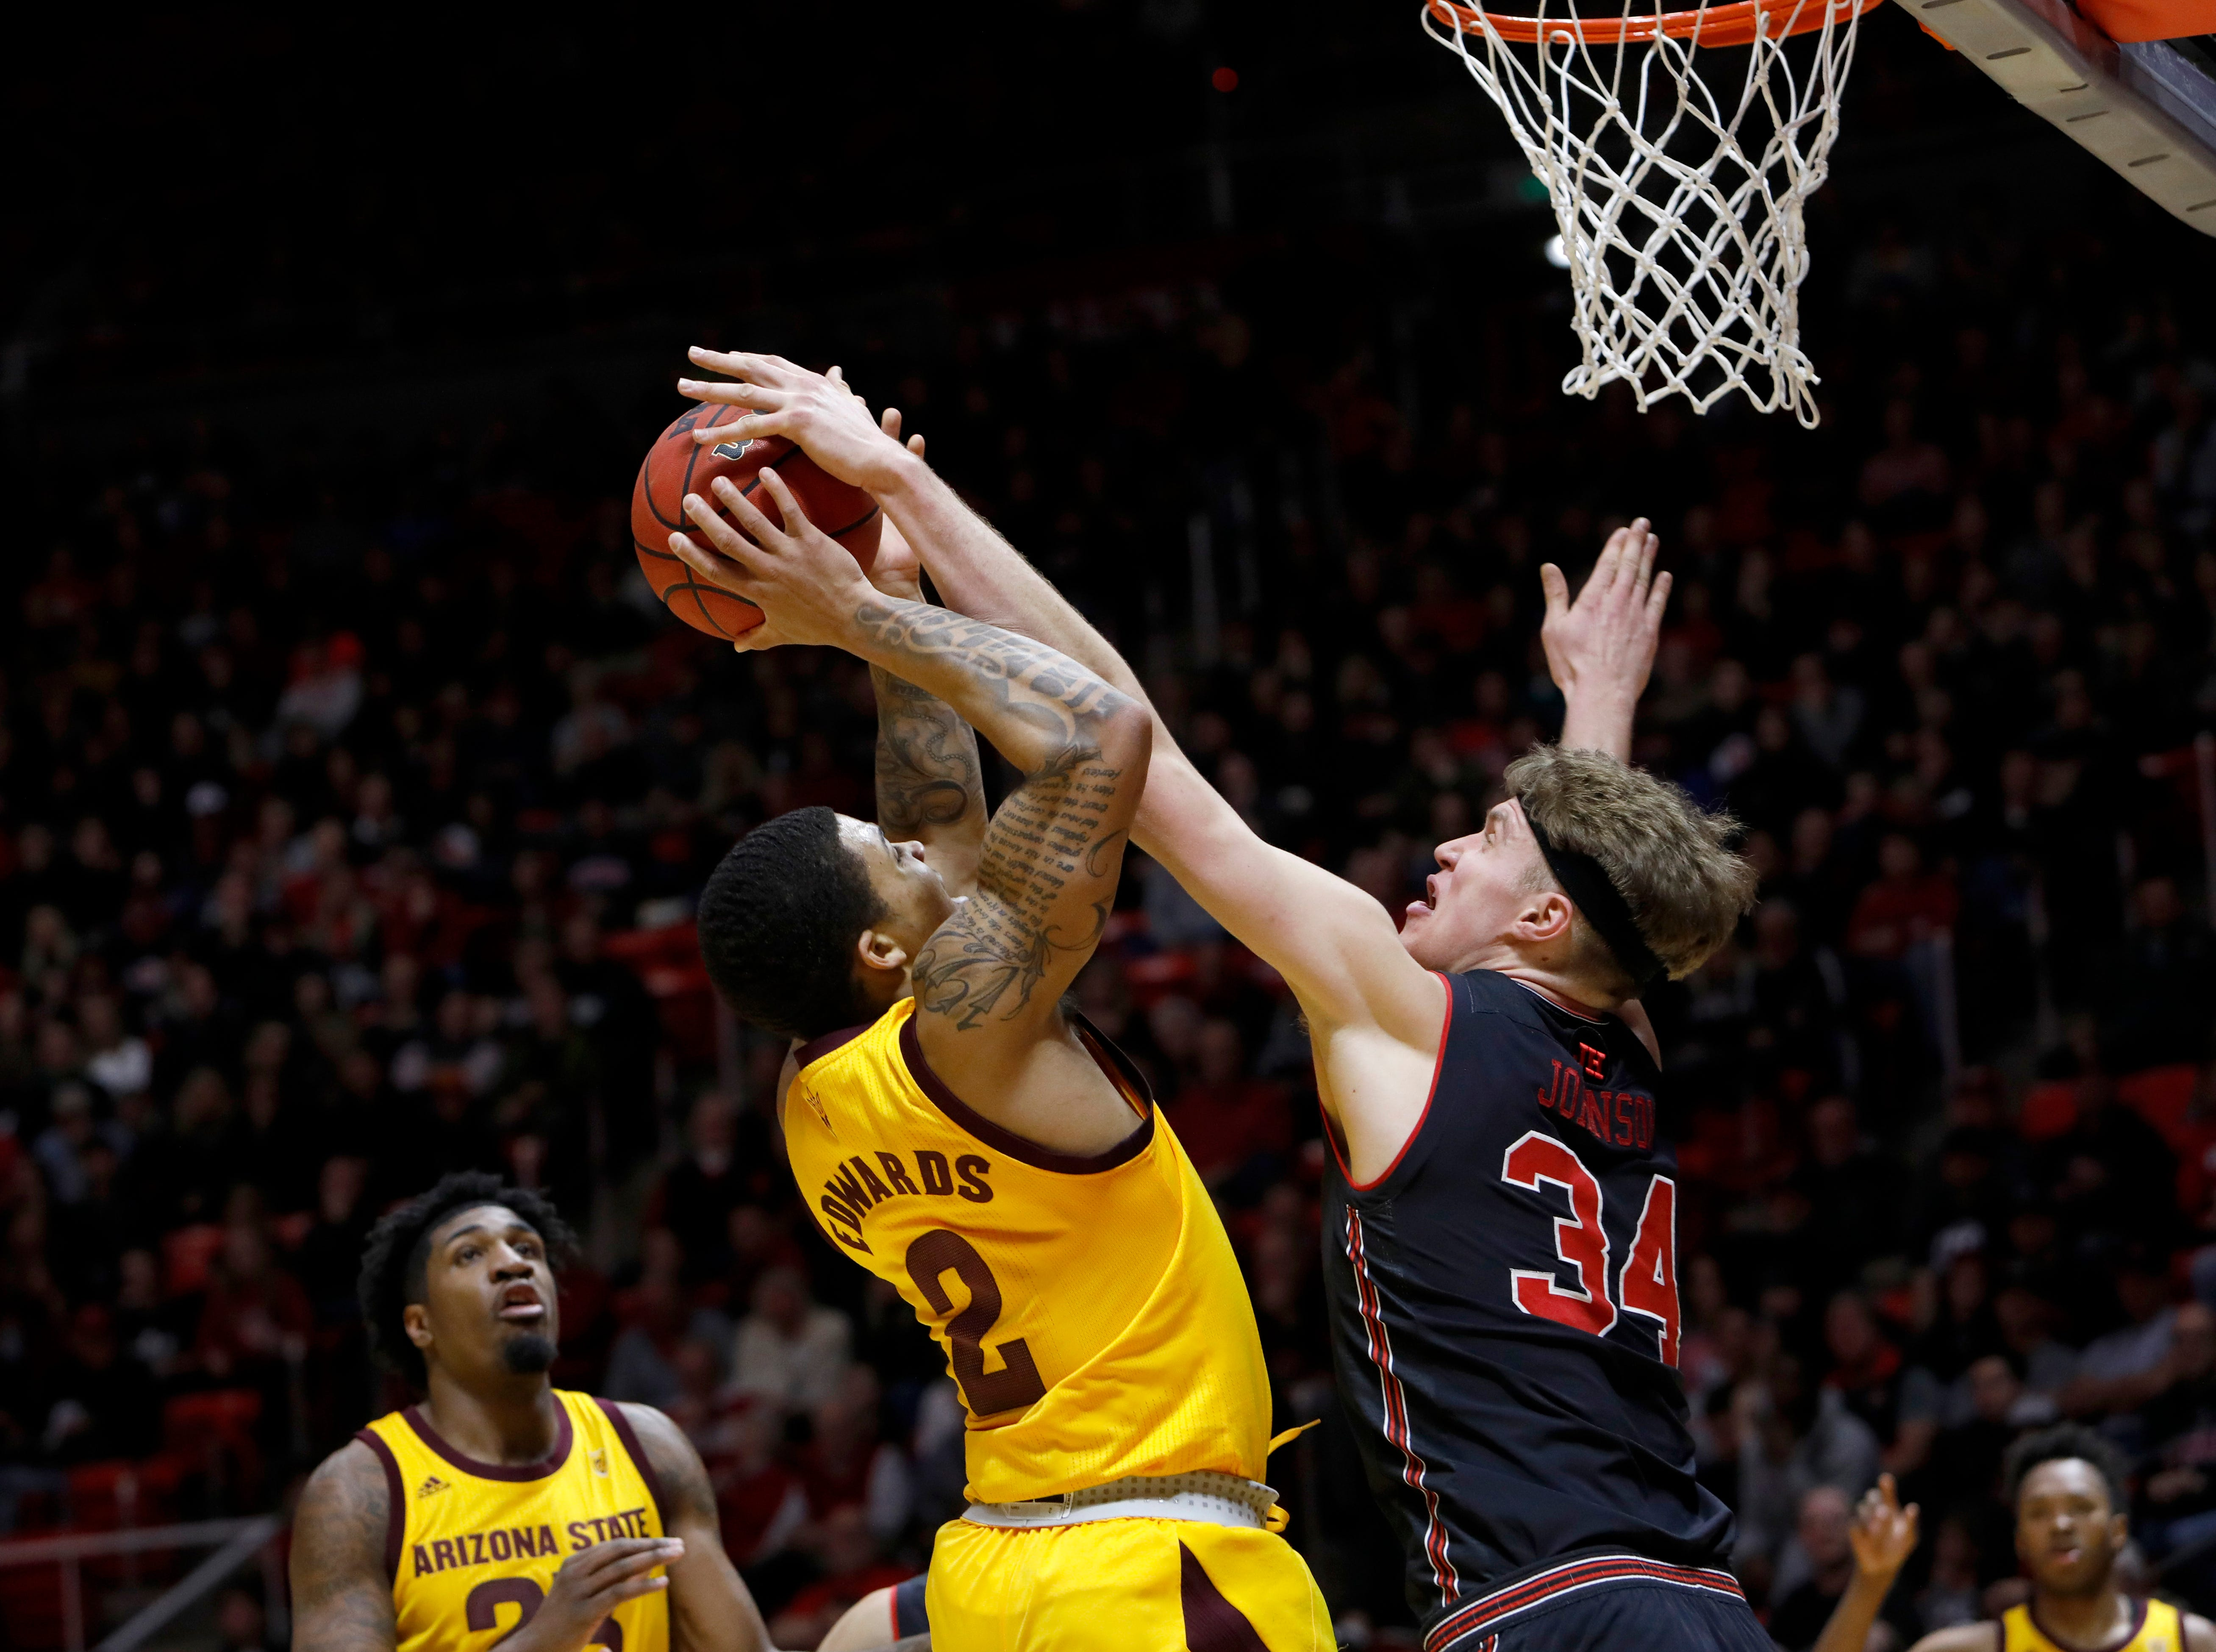 Arizona State's Rob Edwards (2) attempts a shot as Utah's Jayce Johnson (34) gets a hand on the ball during the first half of an NCAA college basketball game Saturday, Feb. 16, 2019, in Salt Lake City. (AP Photo/Kim Raff)